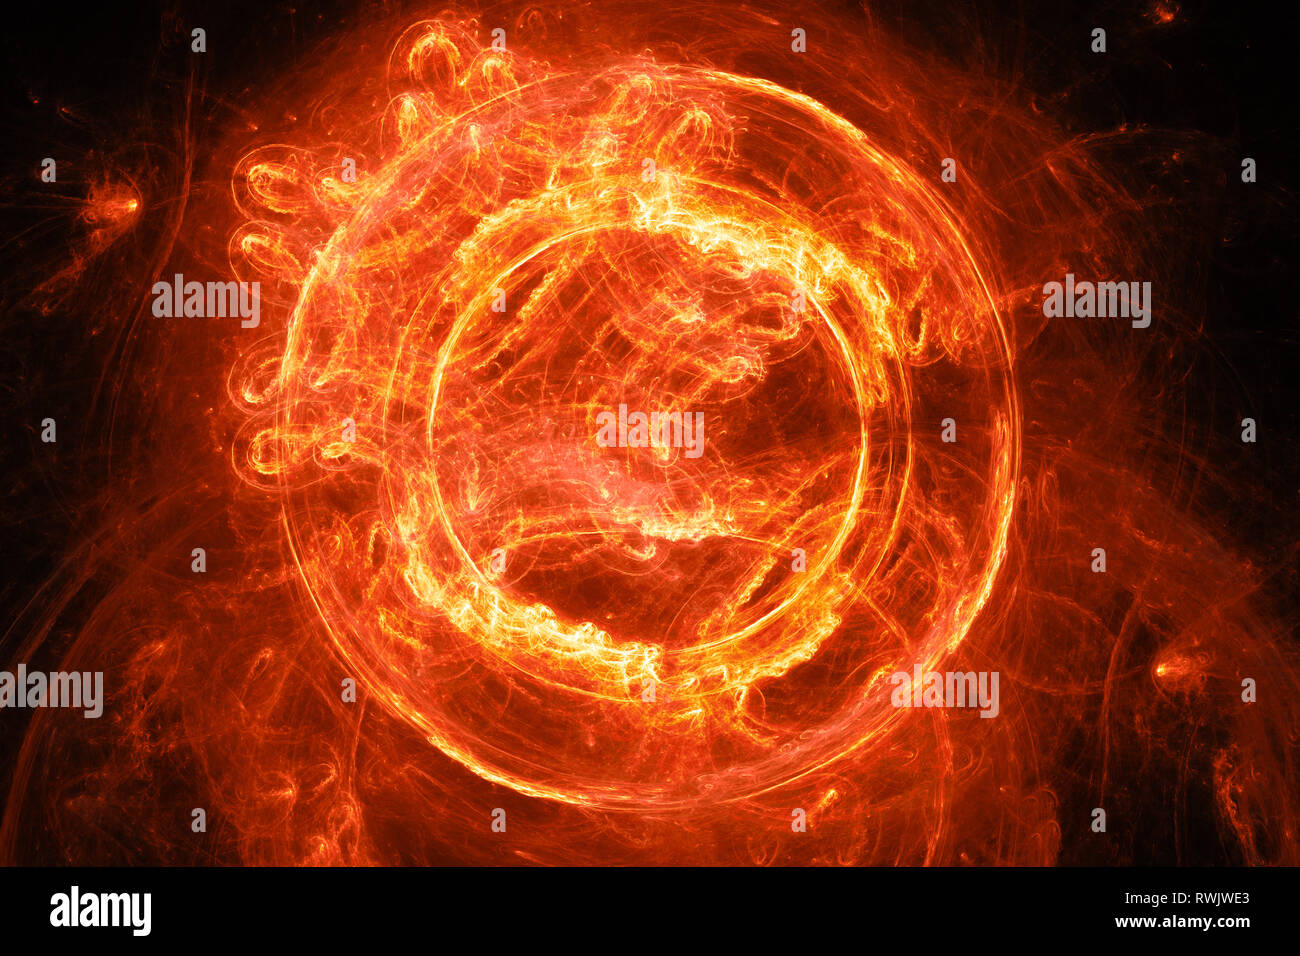 Fiery glowing plasma flame portal, computer generated abstract background, 3D rendering - Stock Image